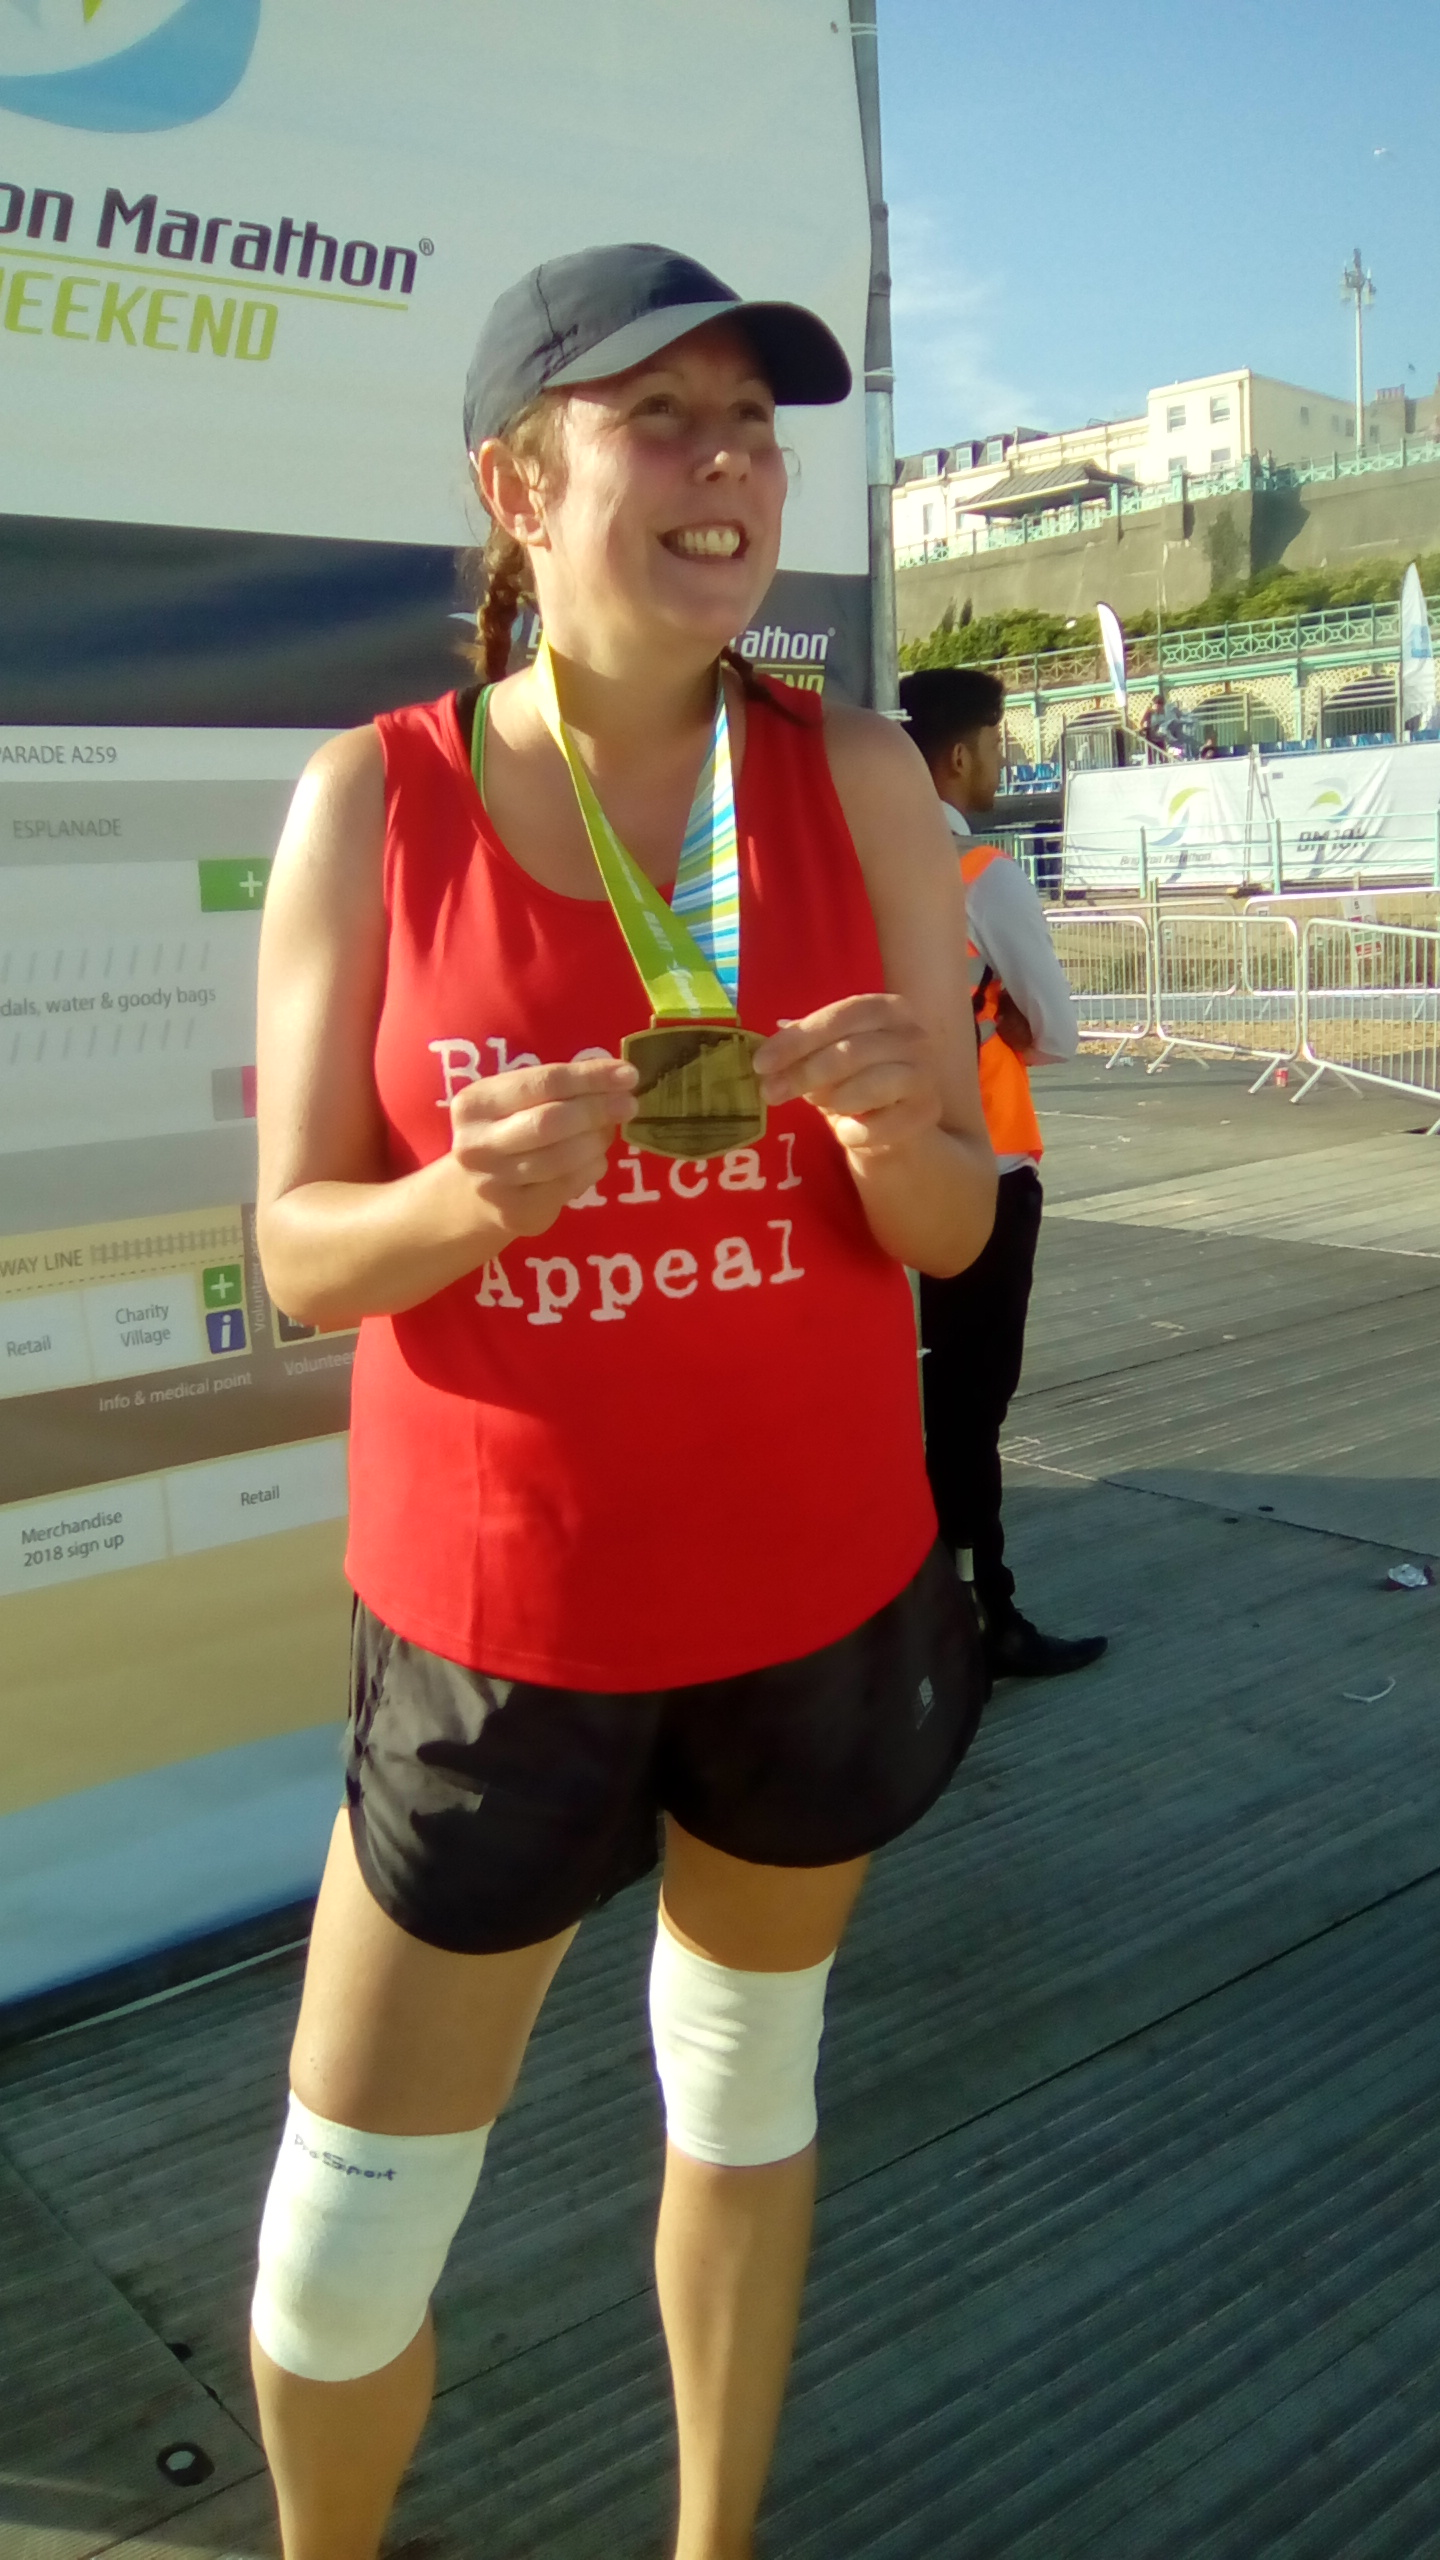 Karen O'Brien With Finisher's Medal